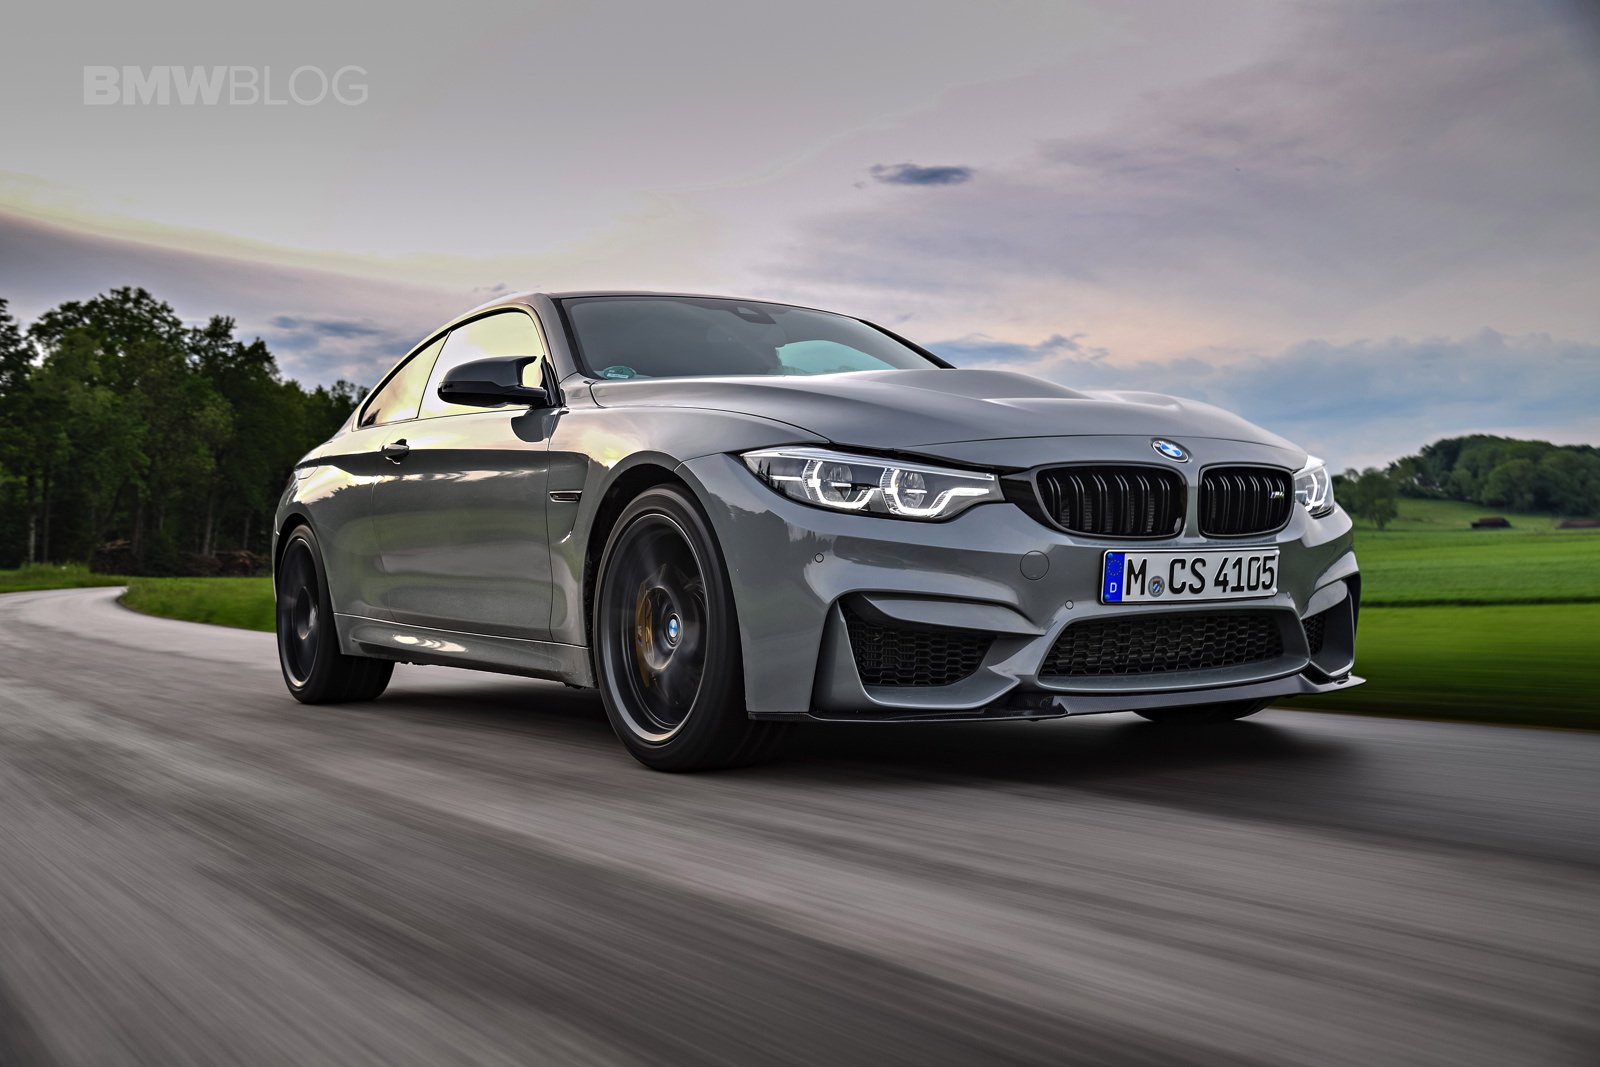 video bmw m4 cs vs bmw m4 gts sound comparison. Black Bedroom Furniture Sets. Home Design Ideas